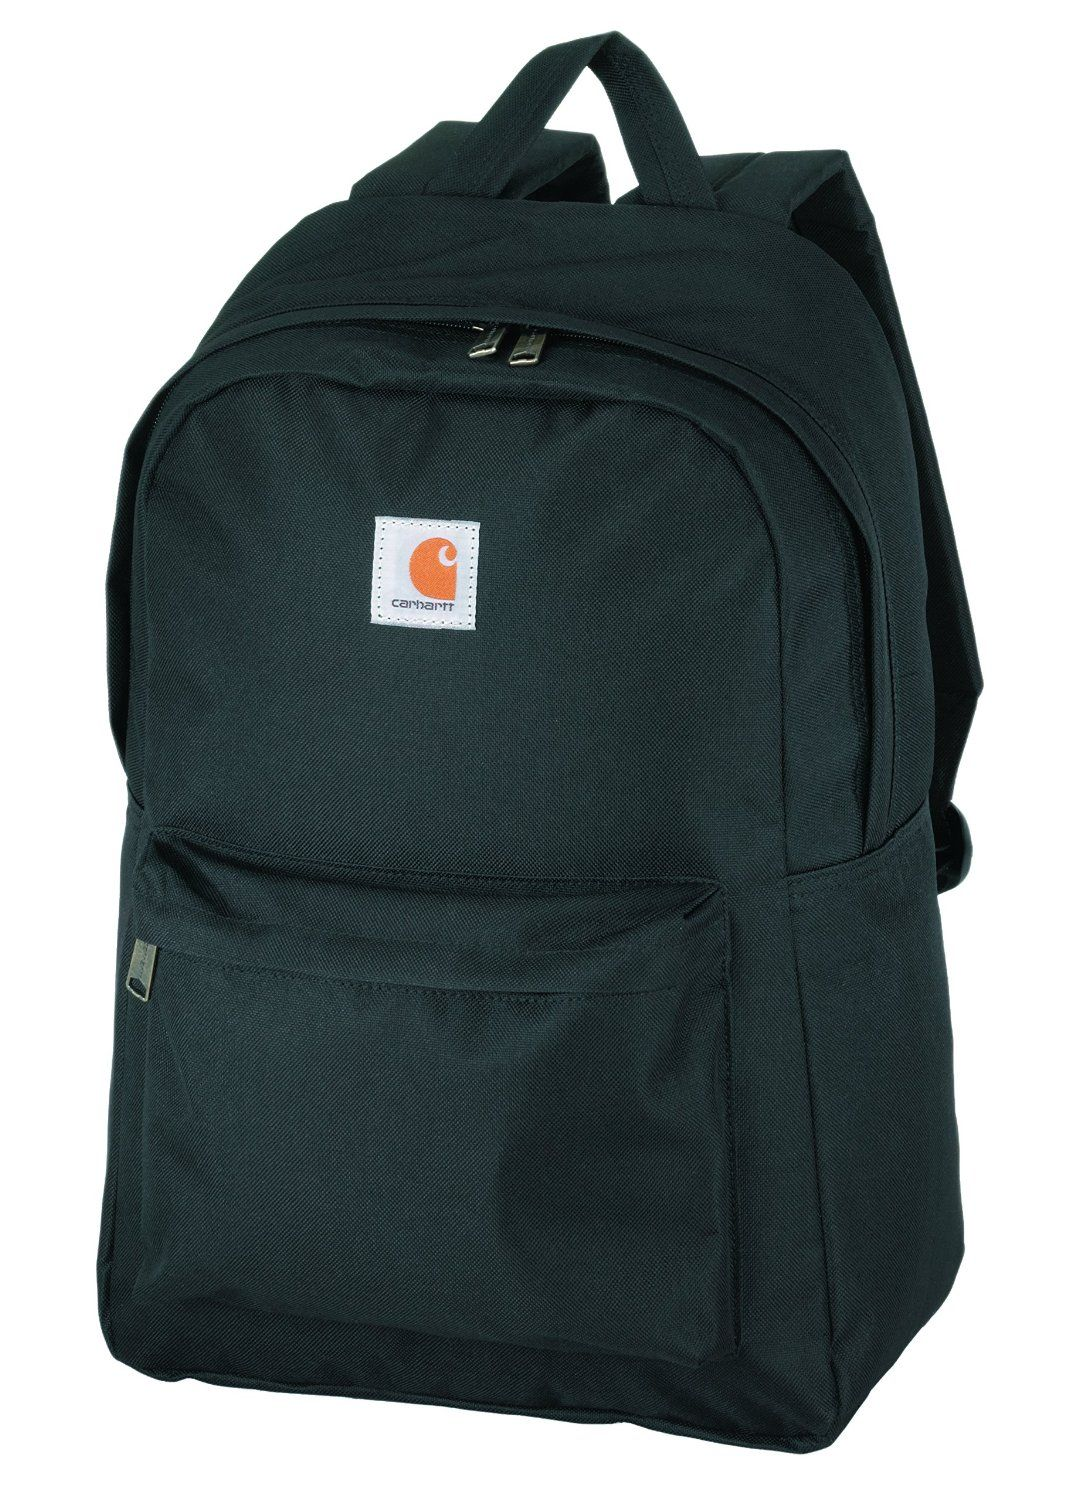 dff86e8cd Carhartt Trade Series Backpack, Black * Find out more details by clicking  the item shown here : Backpacking bags